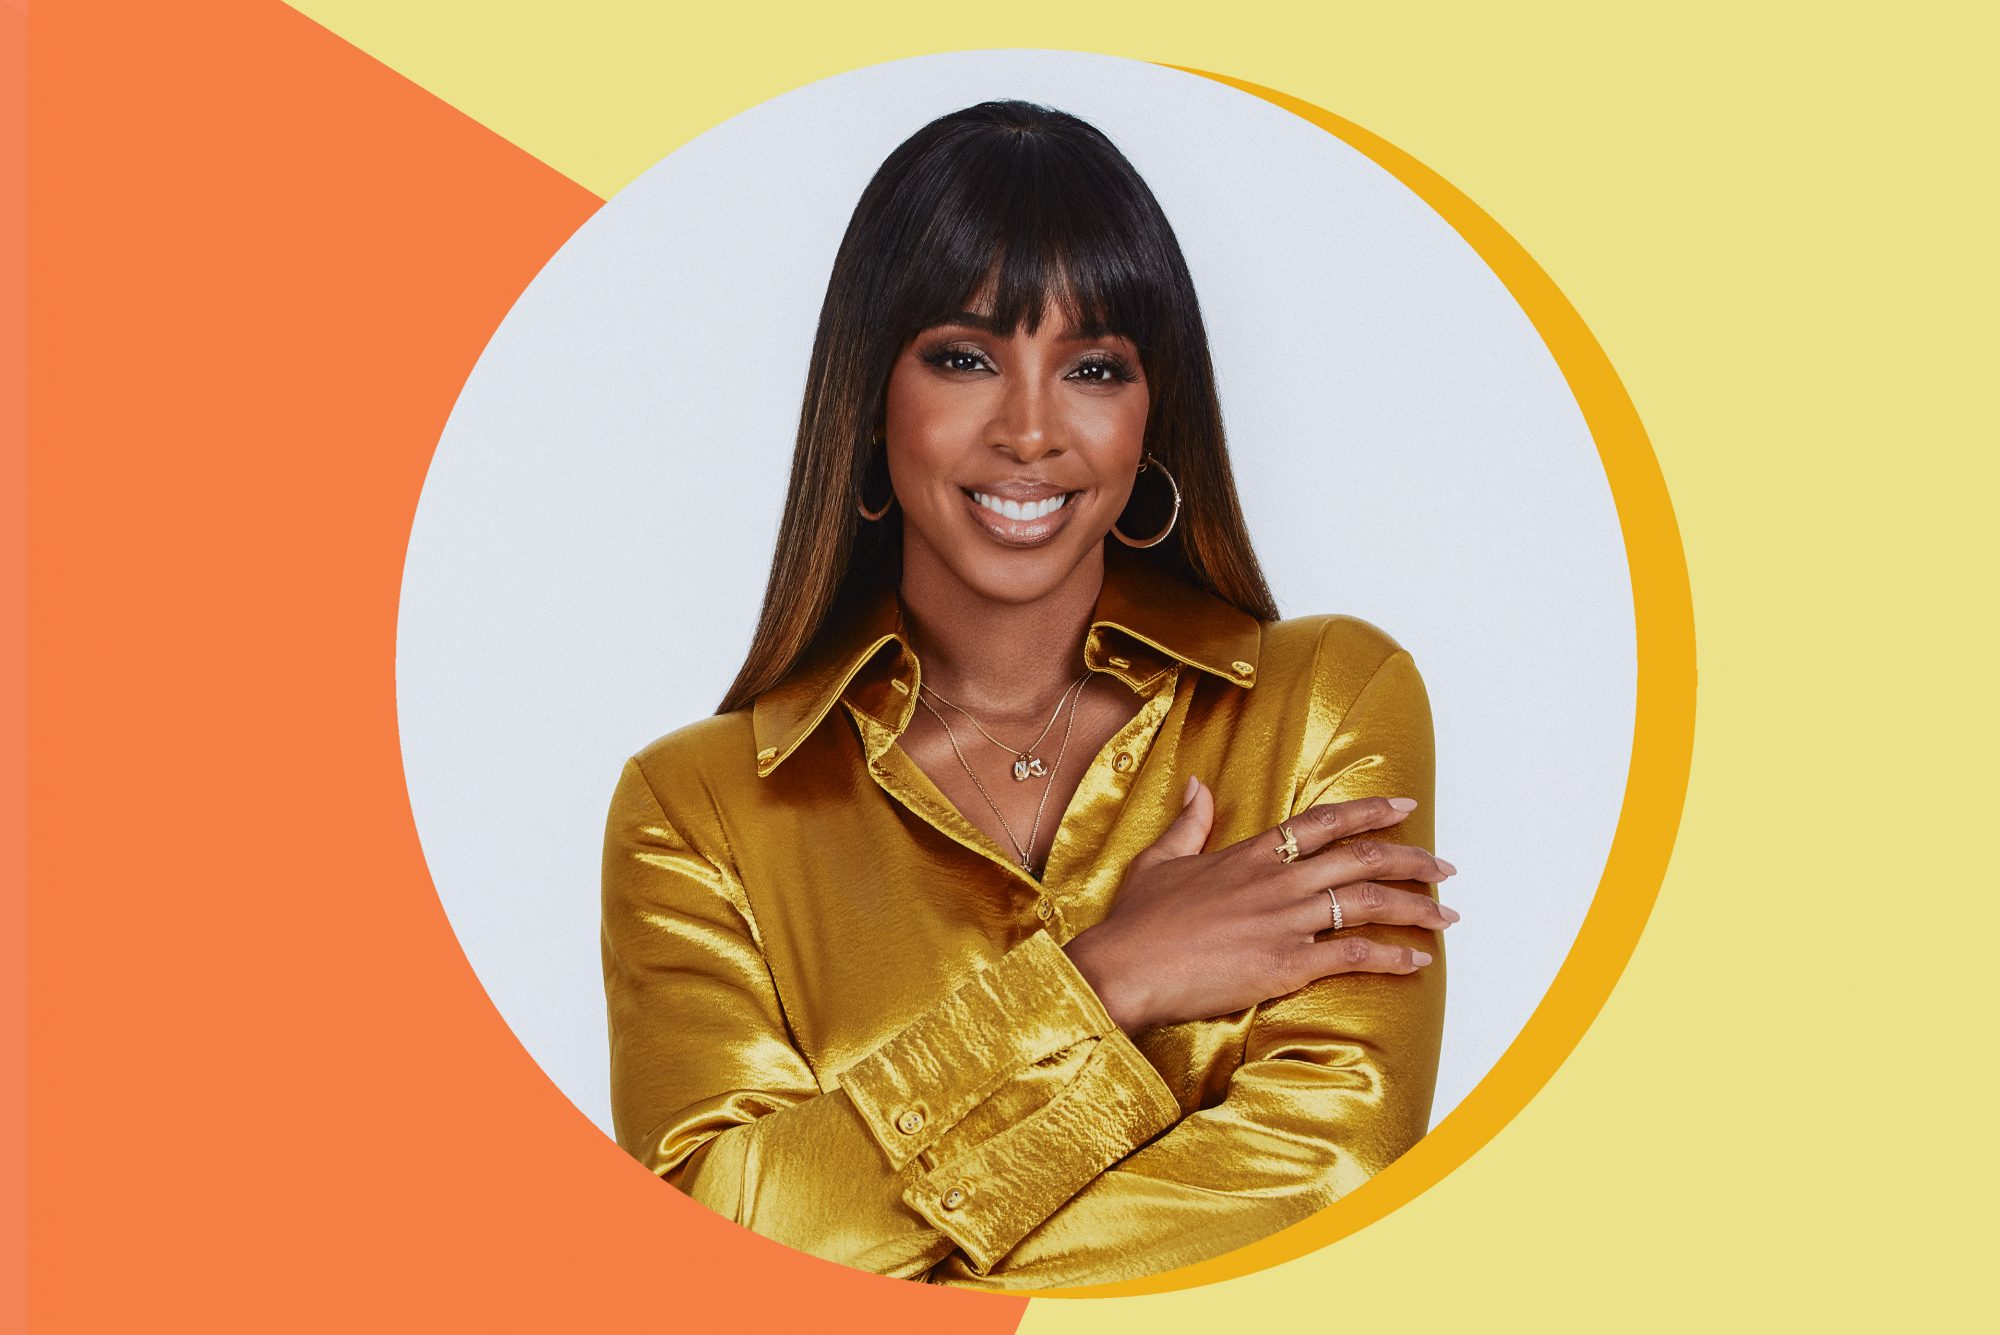 An image of Kelly Rowland on a colorful background.